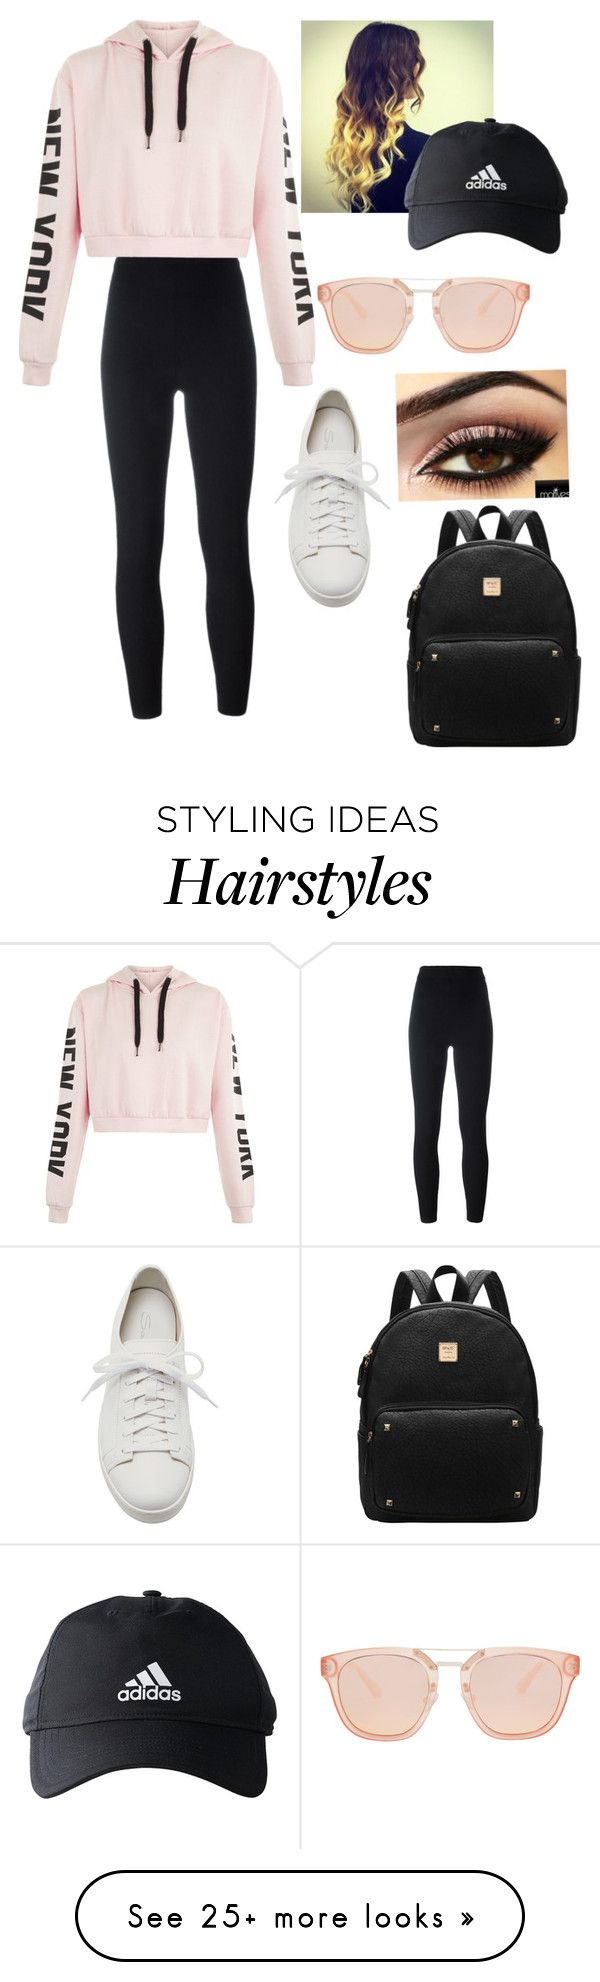 """""""Untitled #389"""" by kaitlyn-skaggs on Polyvore featuring Yeezy by Kanye West, Santoni and adidas"""